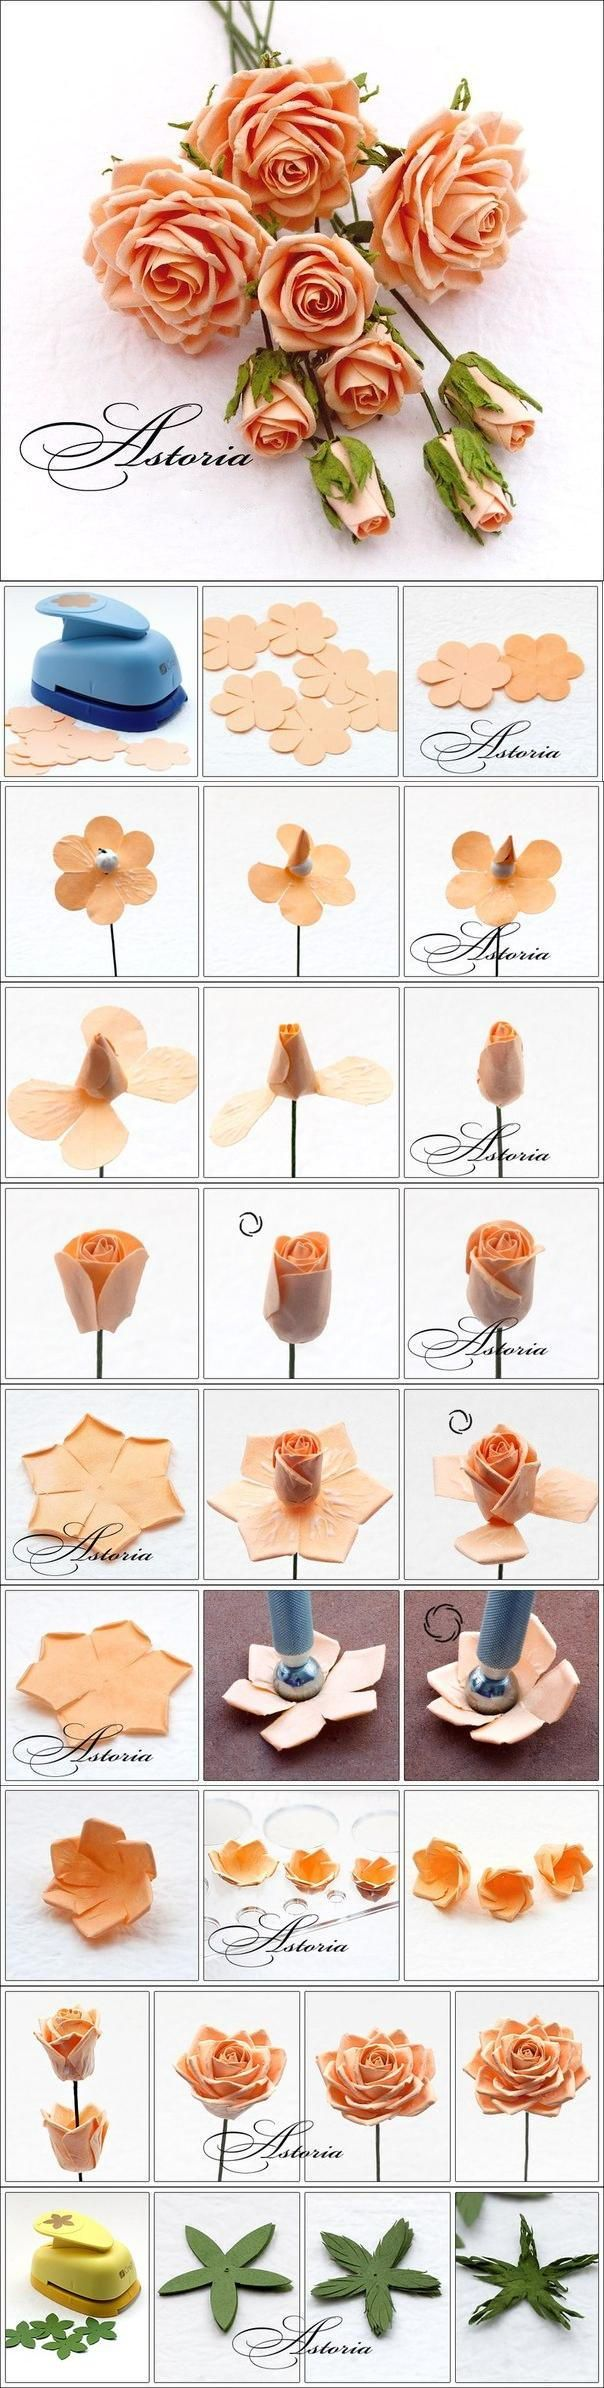 incrediby easy, roses bouquet